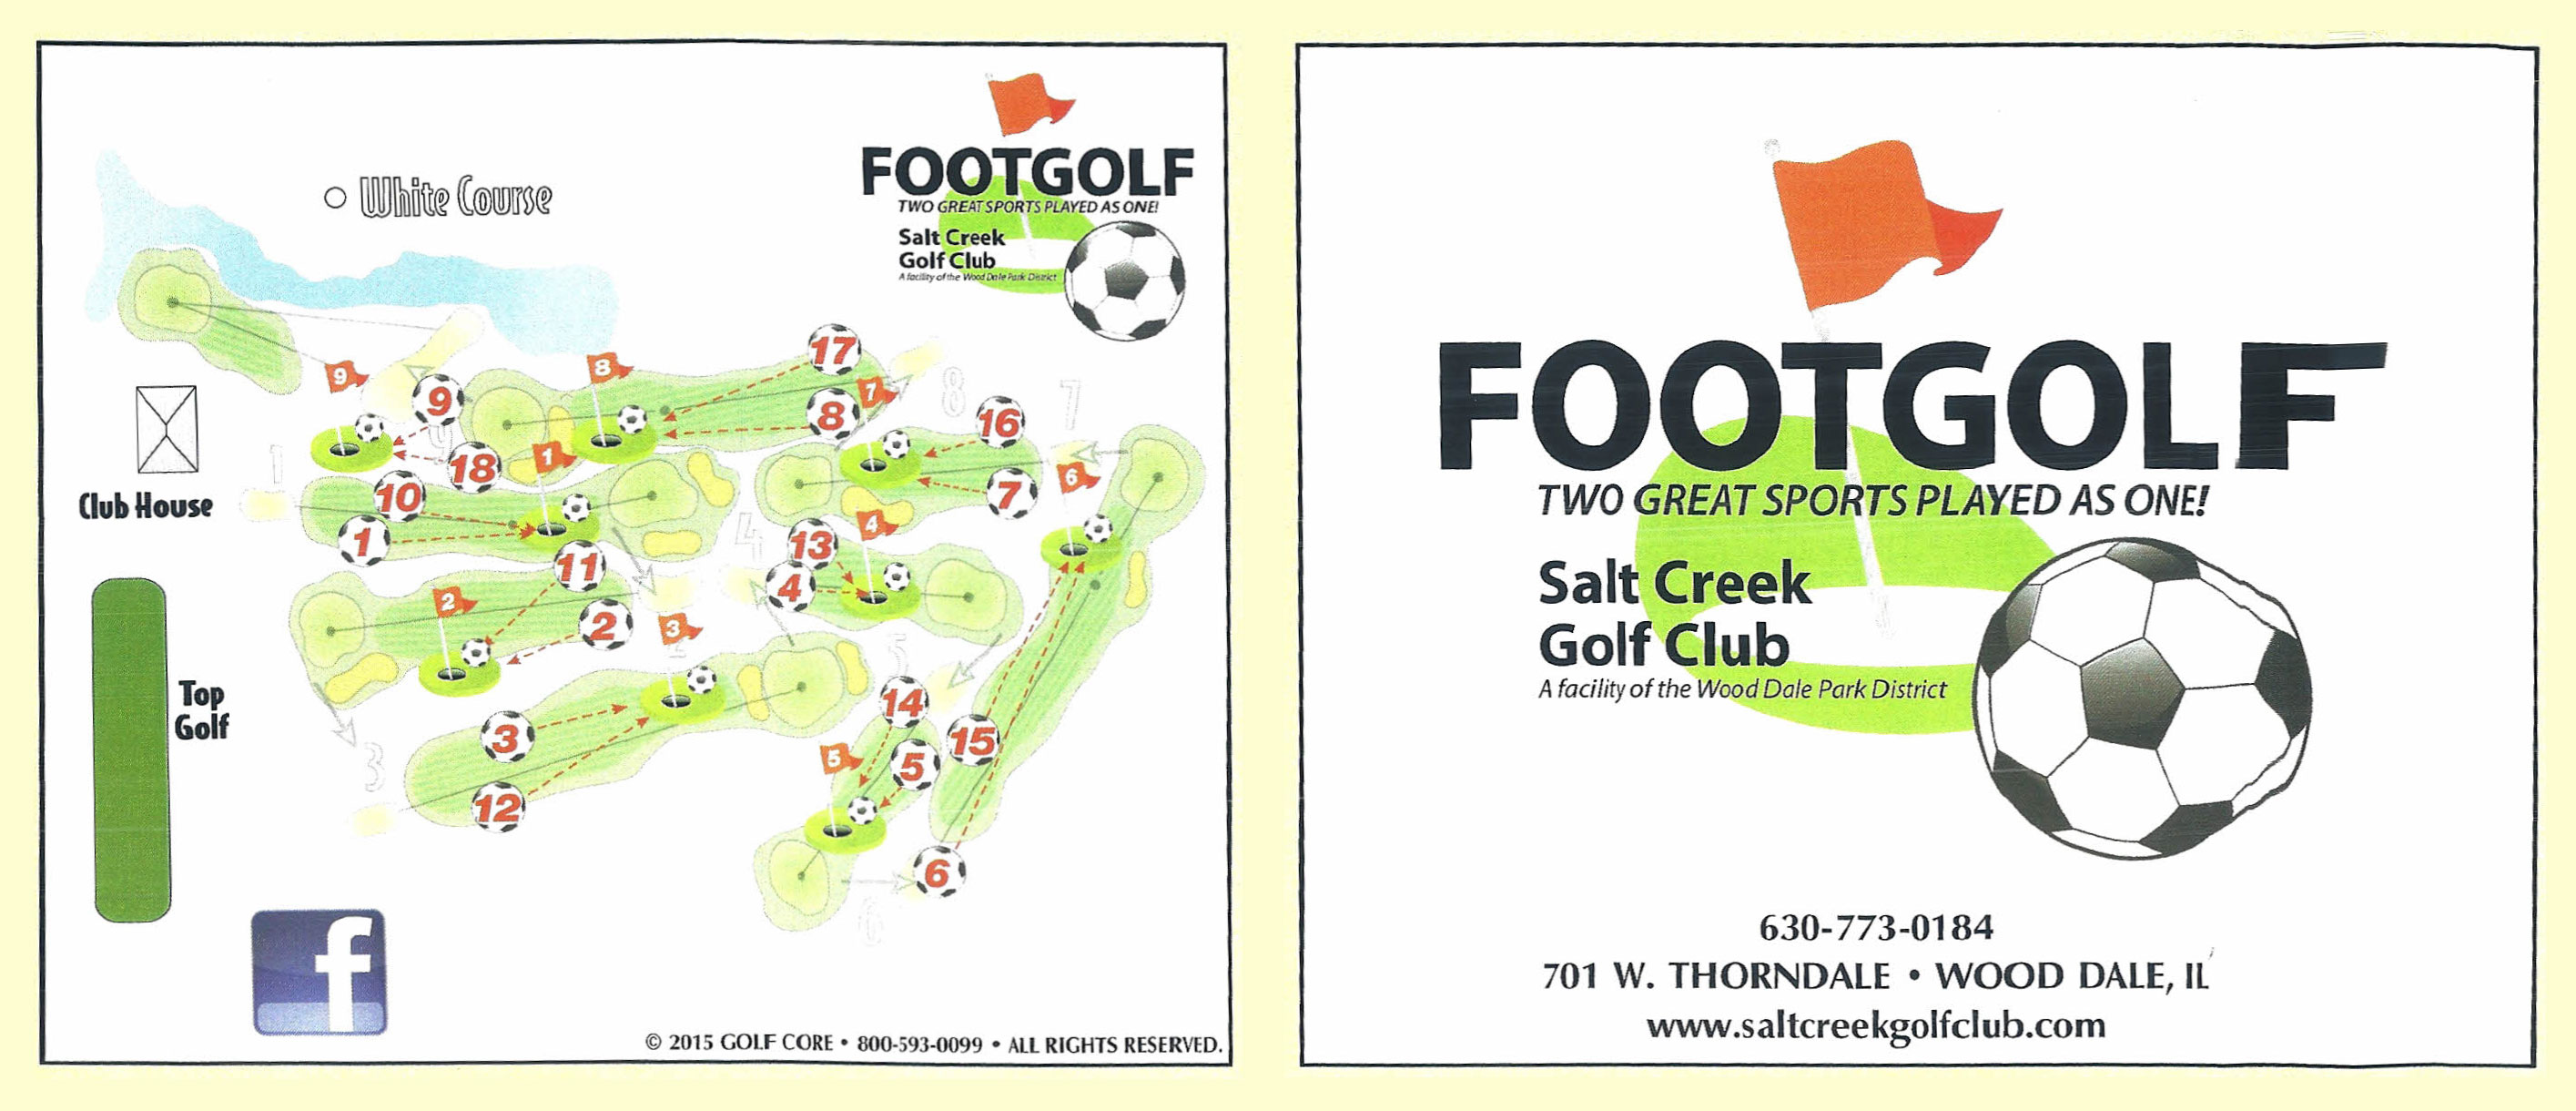 Footgolf-Score-Card2